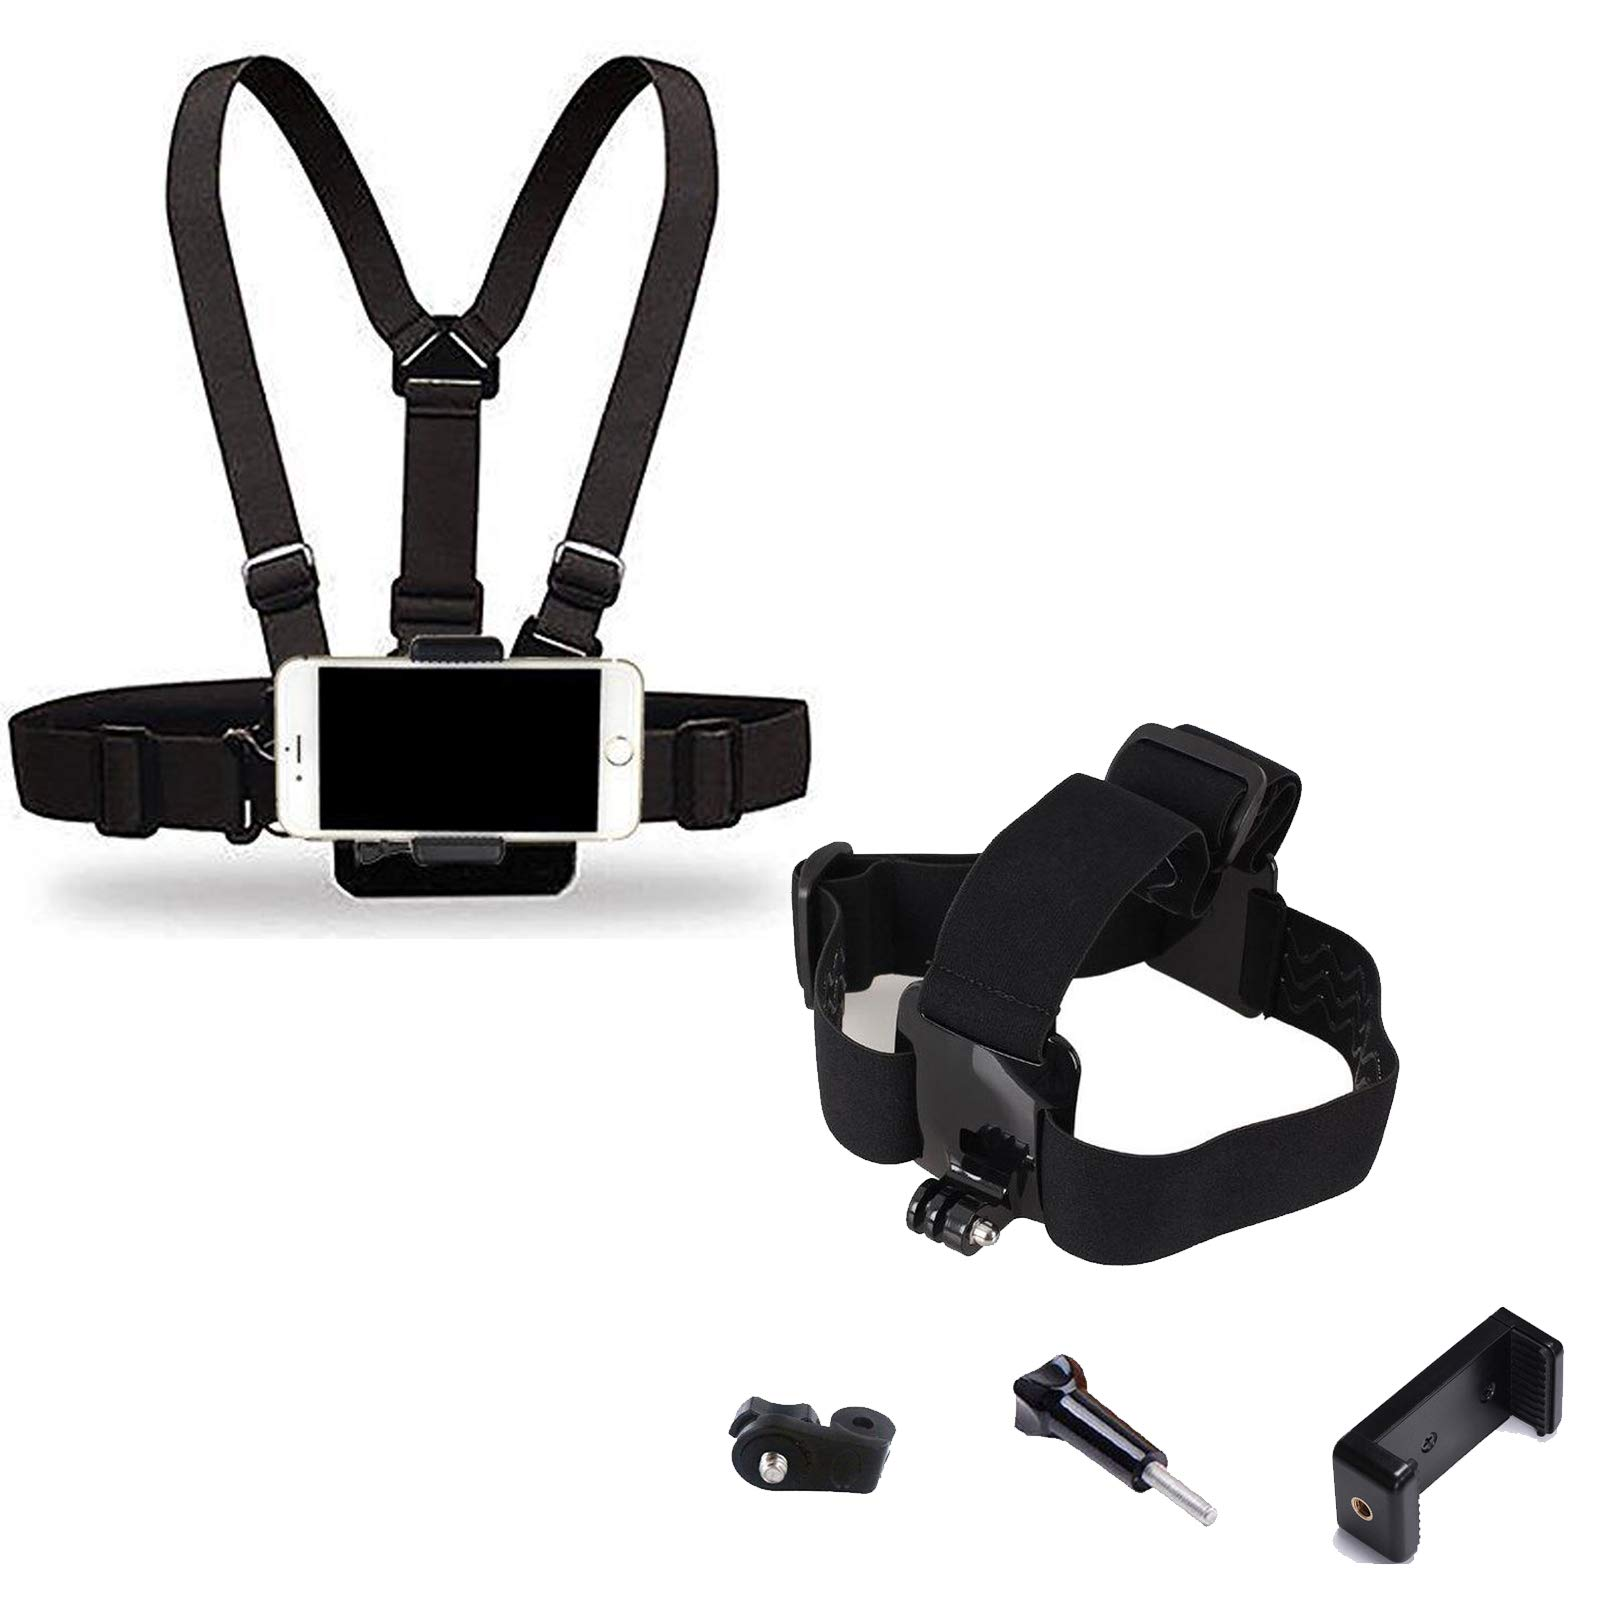 Supkeyer 2in1 Chest Mount+ Head Mount Strap Harness with Phone Clip & J-Hook & Screw & Adaptor for Sport Action Camera/iPhone 11,11 Pro,11 Pro Max,Xs Max XR 8+ 8 7+ /Any Smart Phone